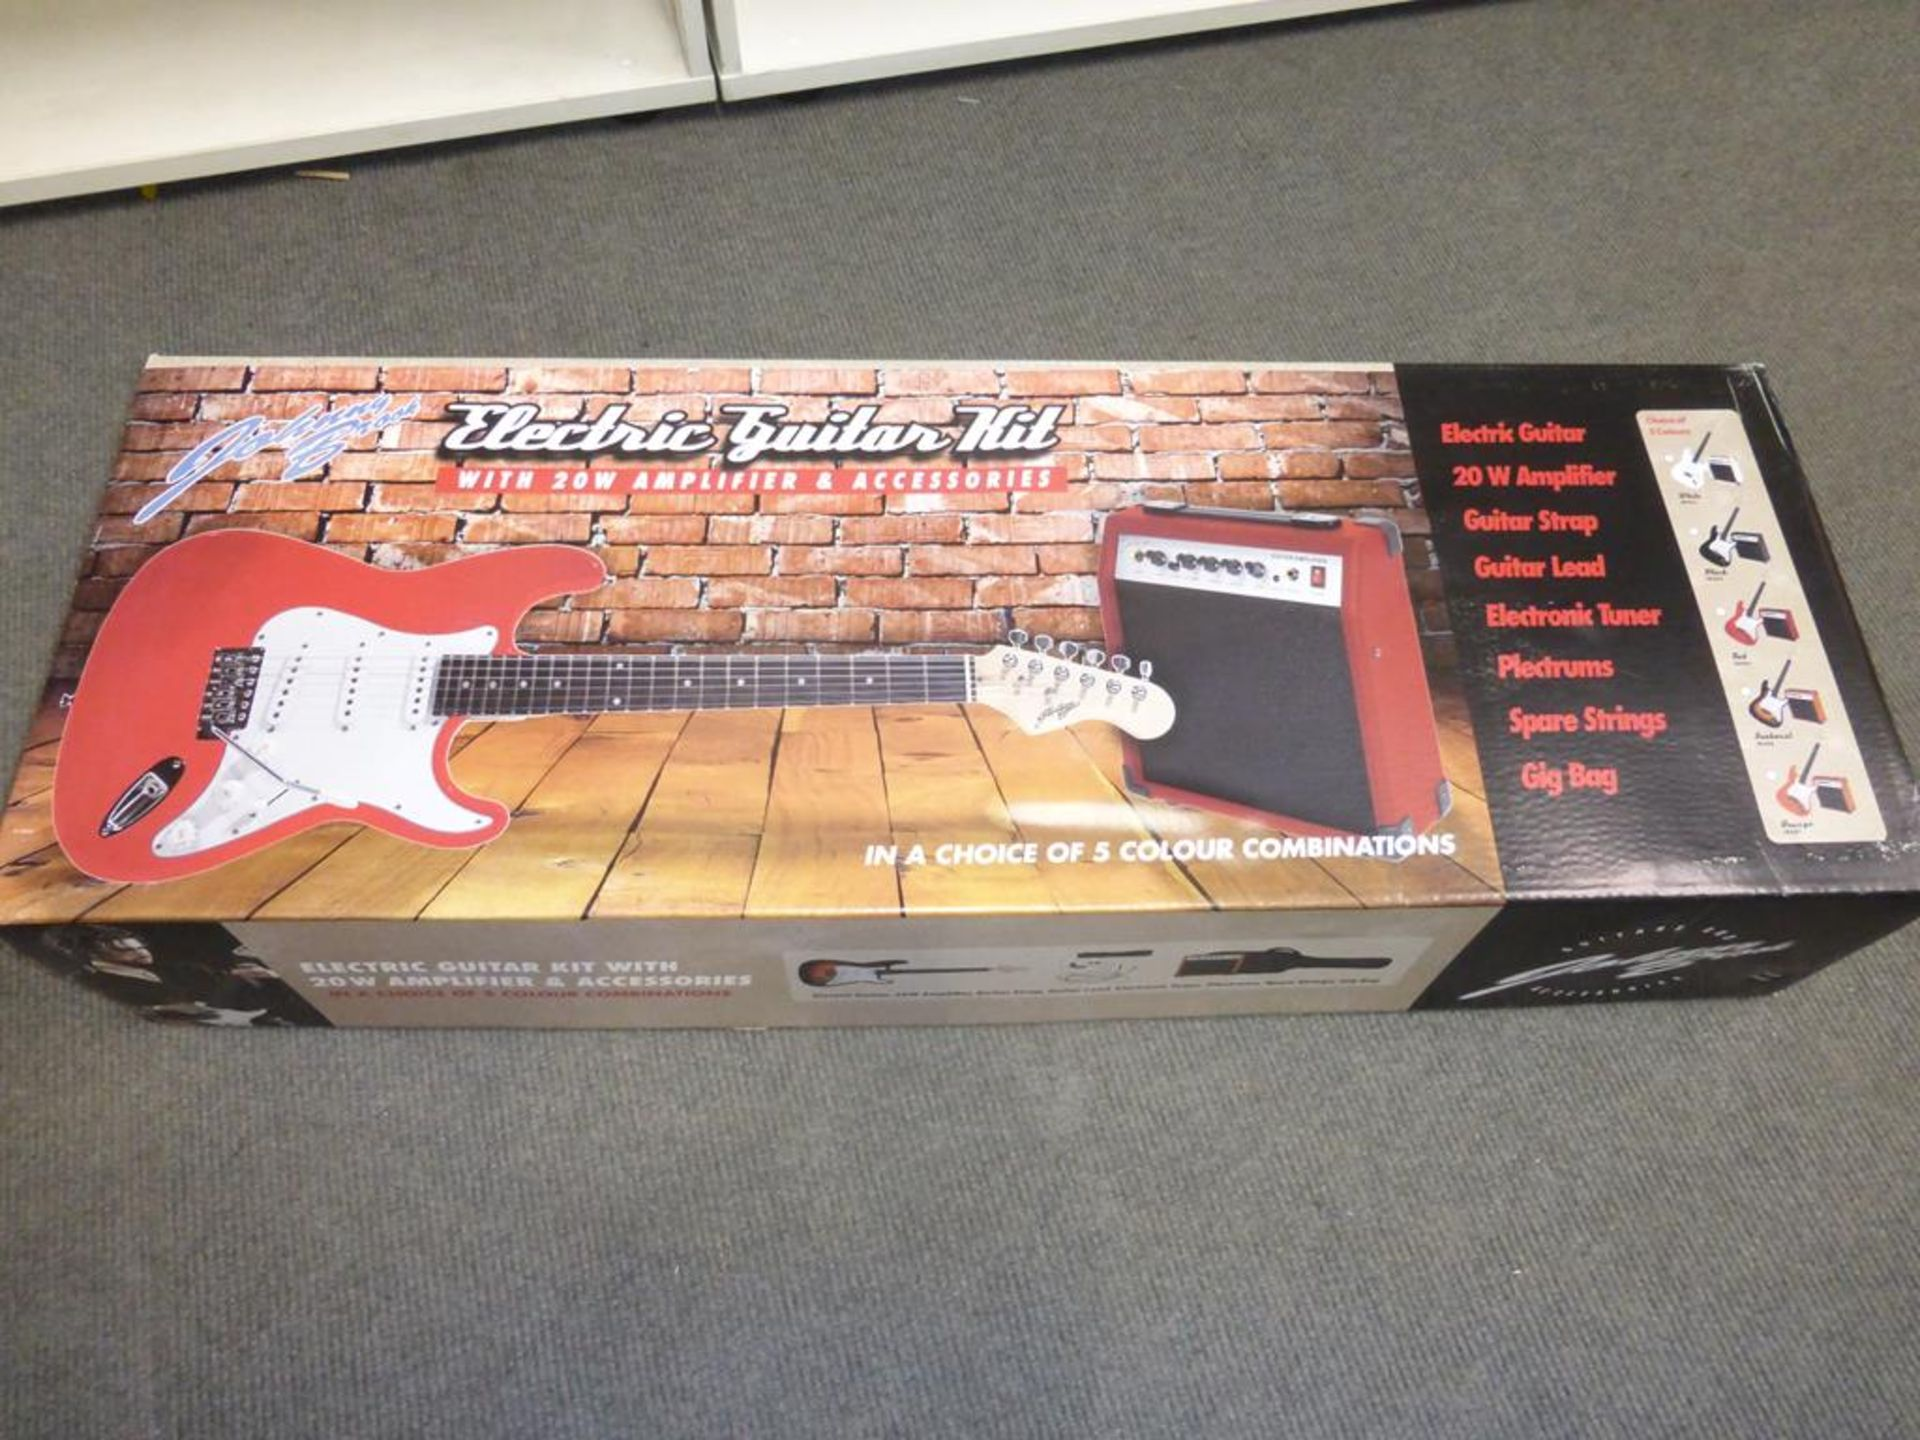 Lot 37 - * A Johnny Brook Guitar Kit with 20W Amplifier and Accessories (RRP £88.99) (Colour White)